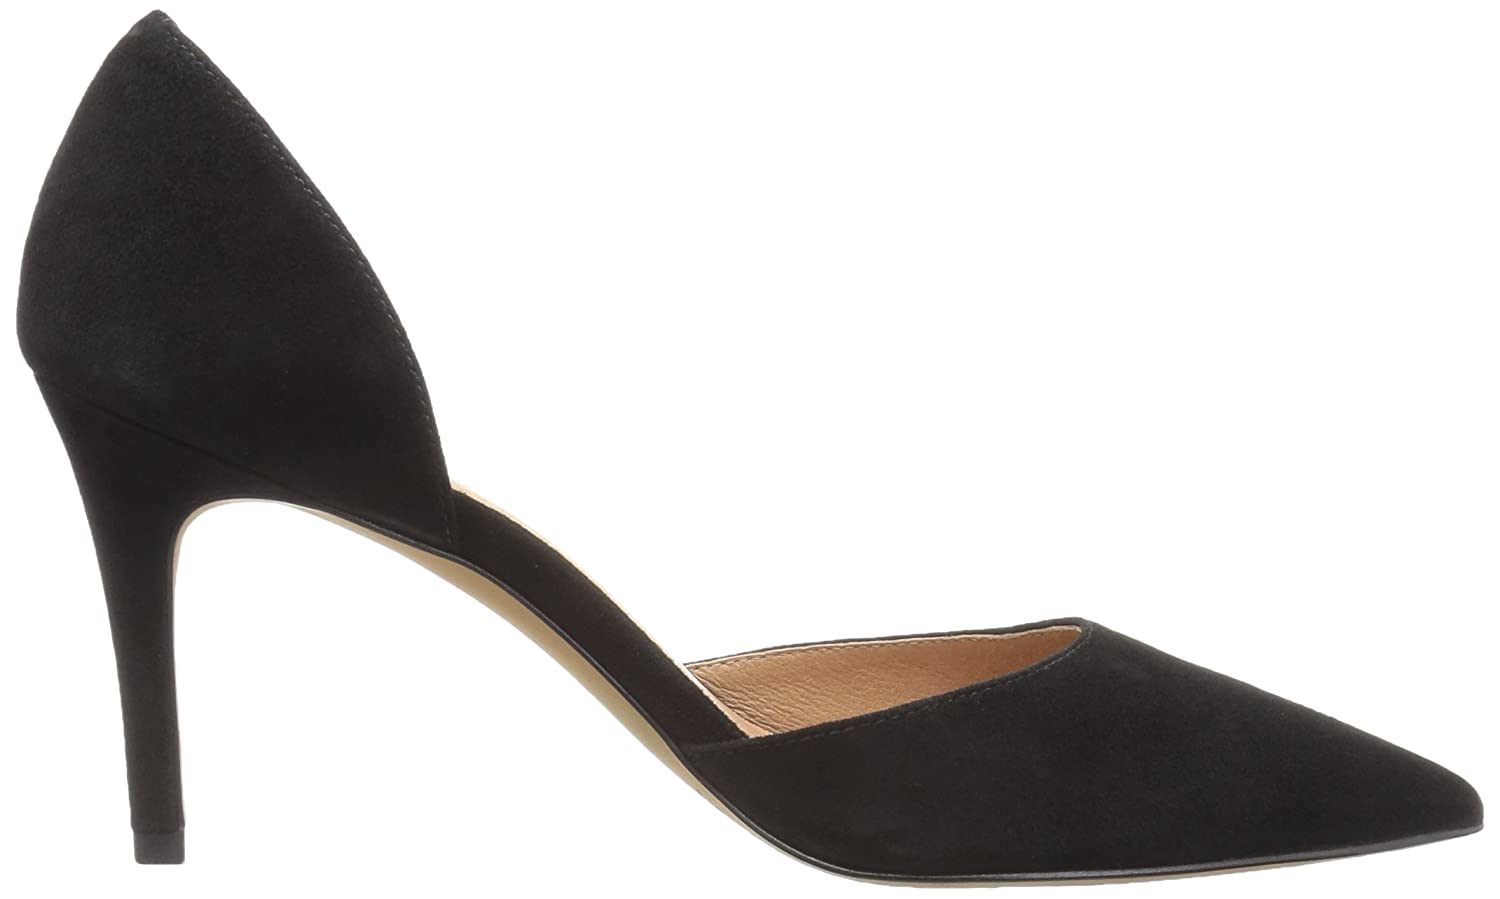 206 Collective Women's Adelaide D'Orsay Dress Pump B0789623BR 9.5 B(M) US|Black Suede